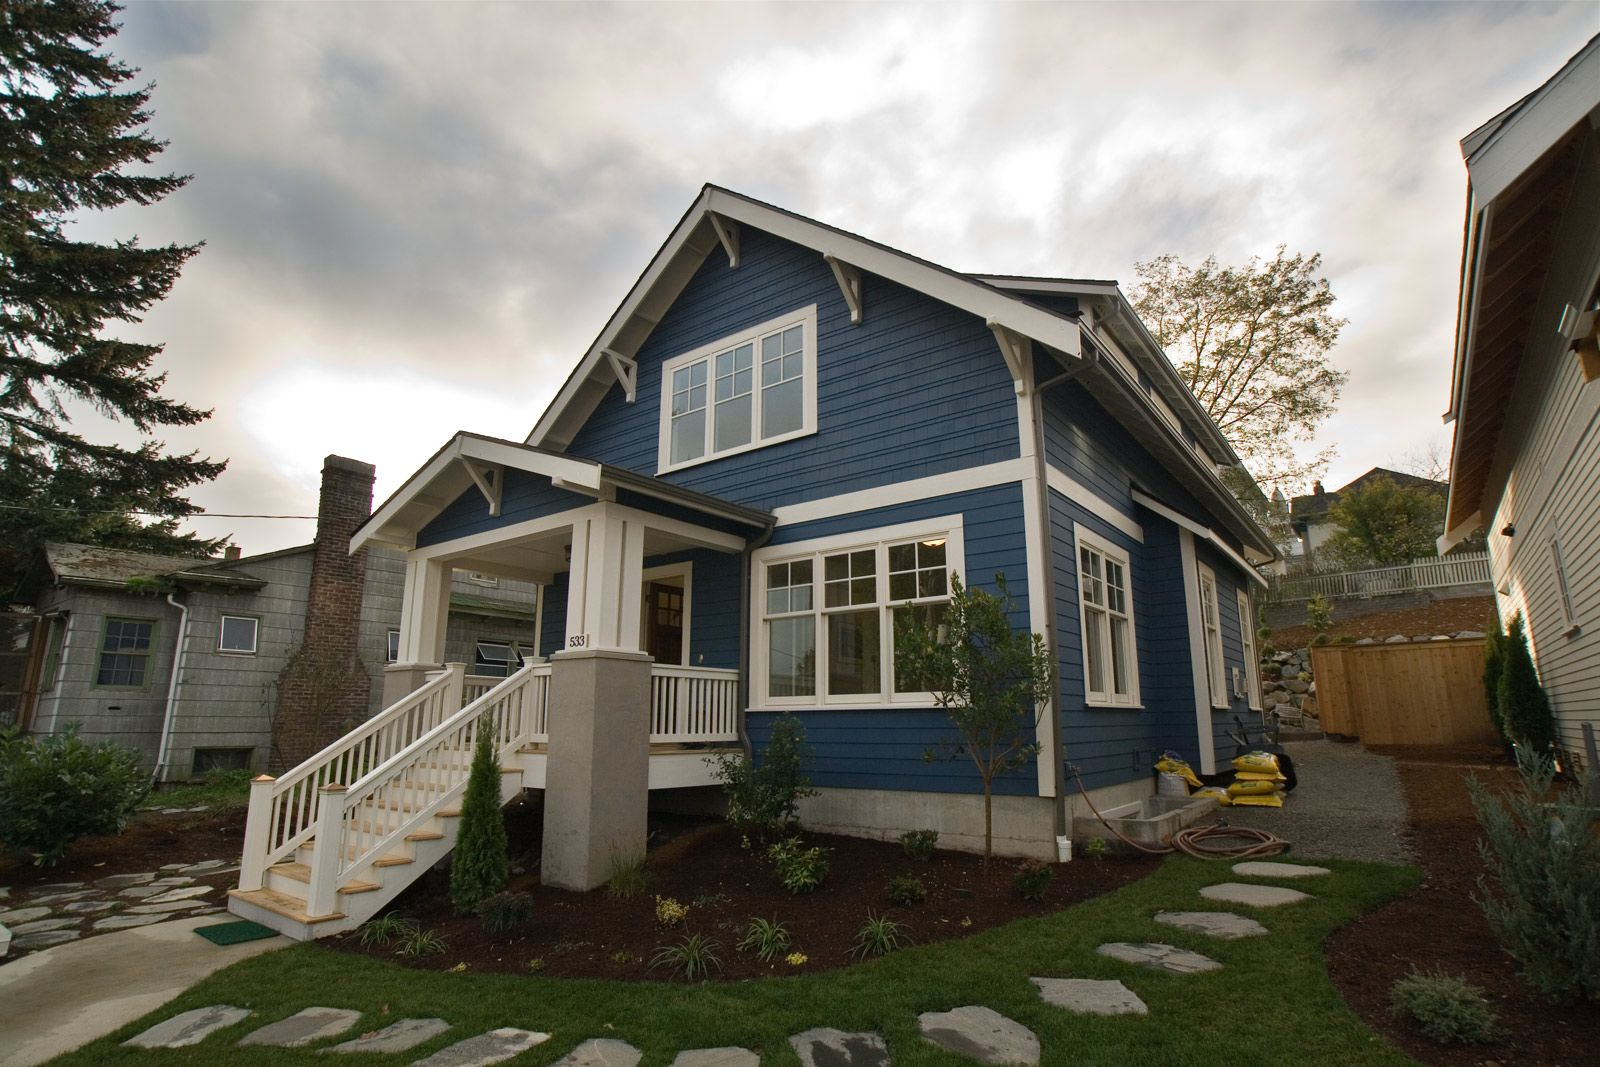 Craftsman exterior house paint ideas - Explore Paint Color Combinations And More